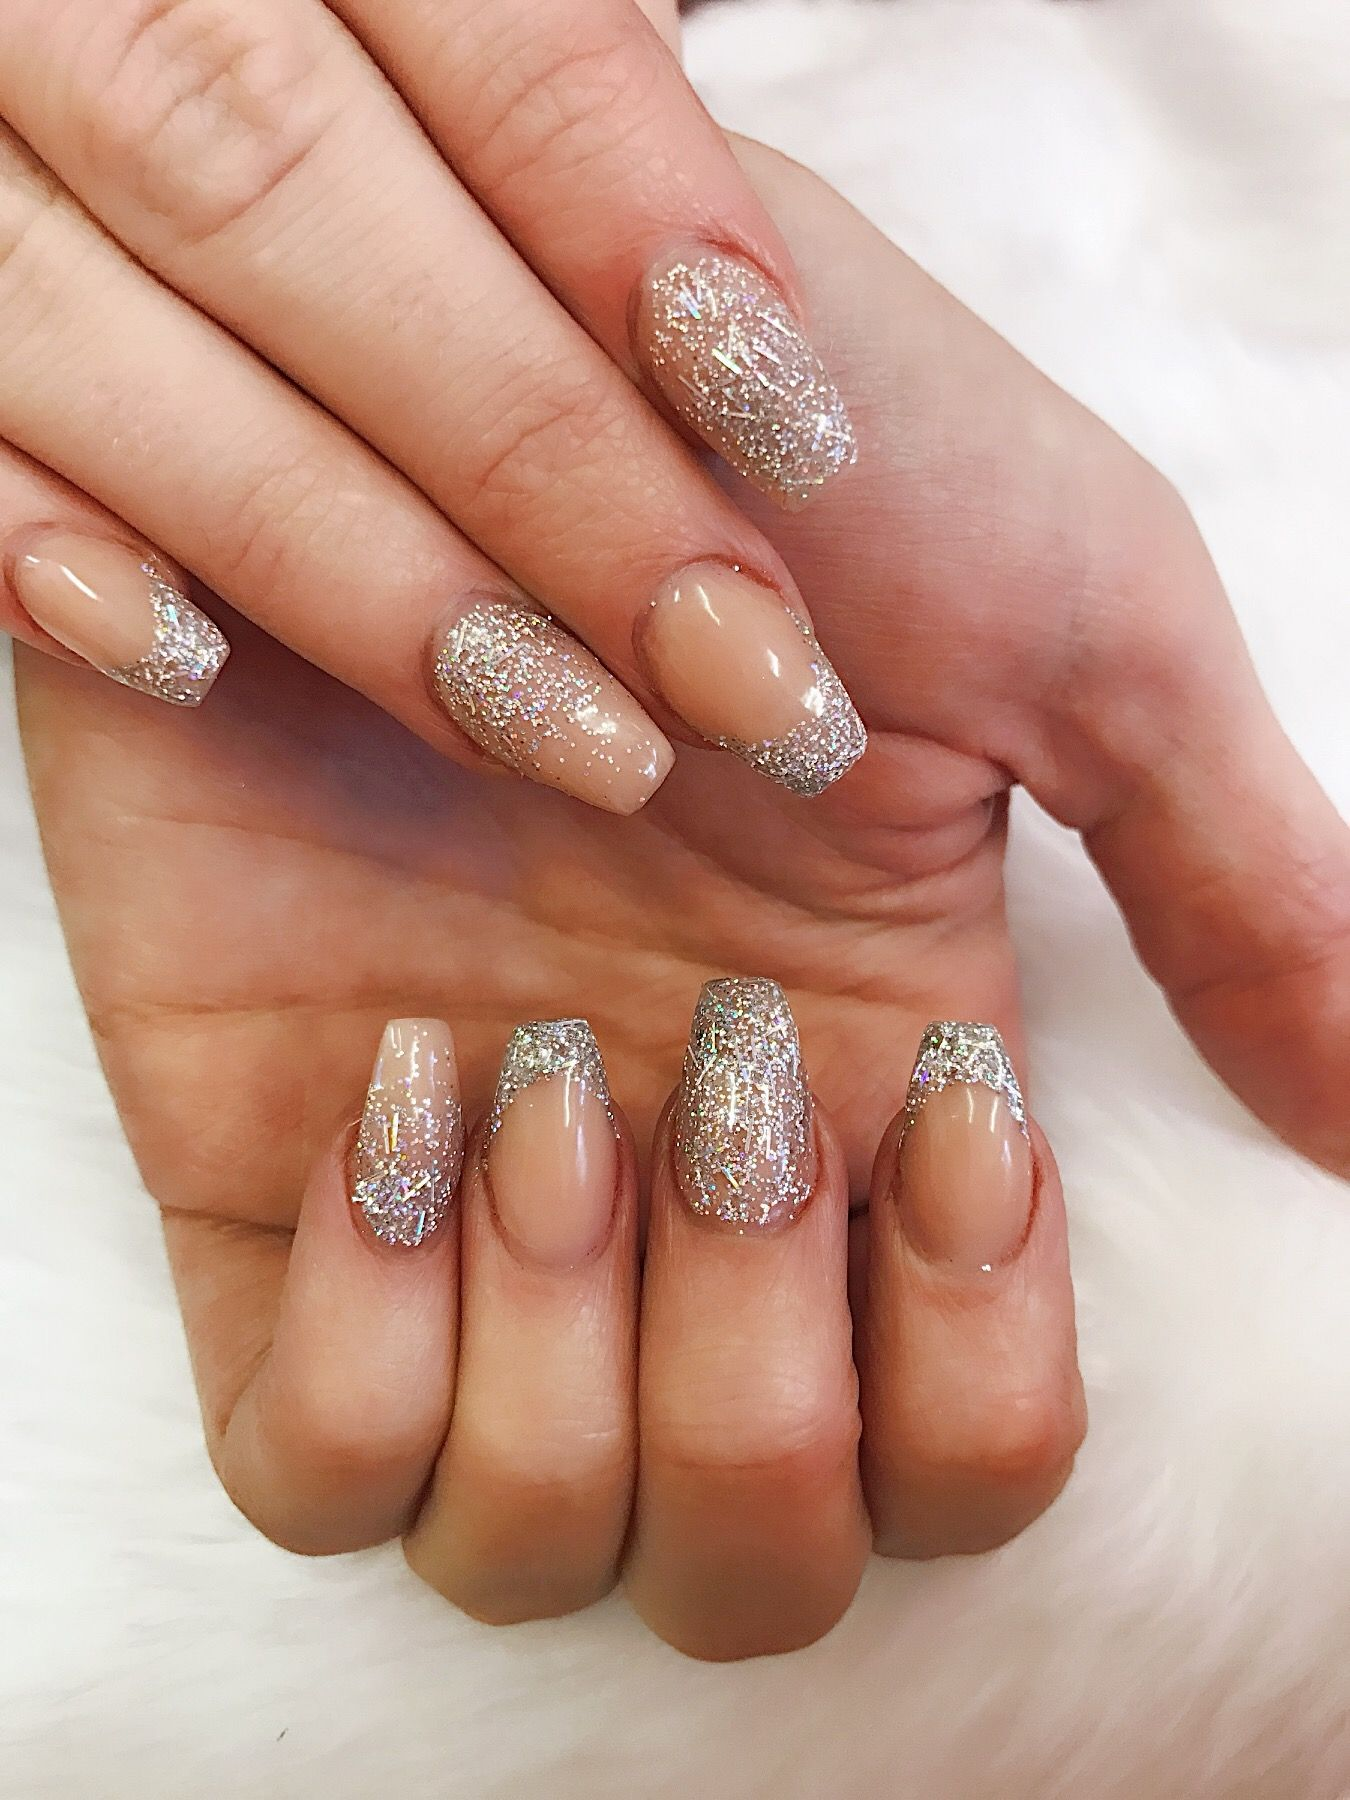 Encapsulated Glitter Coffin Shaped Acrylic Nails